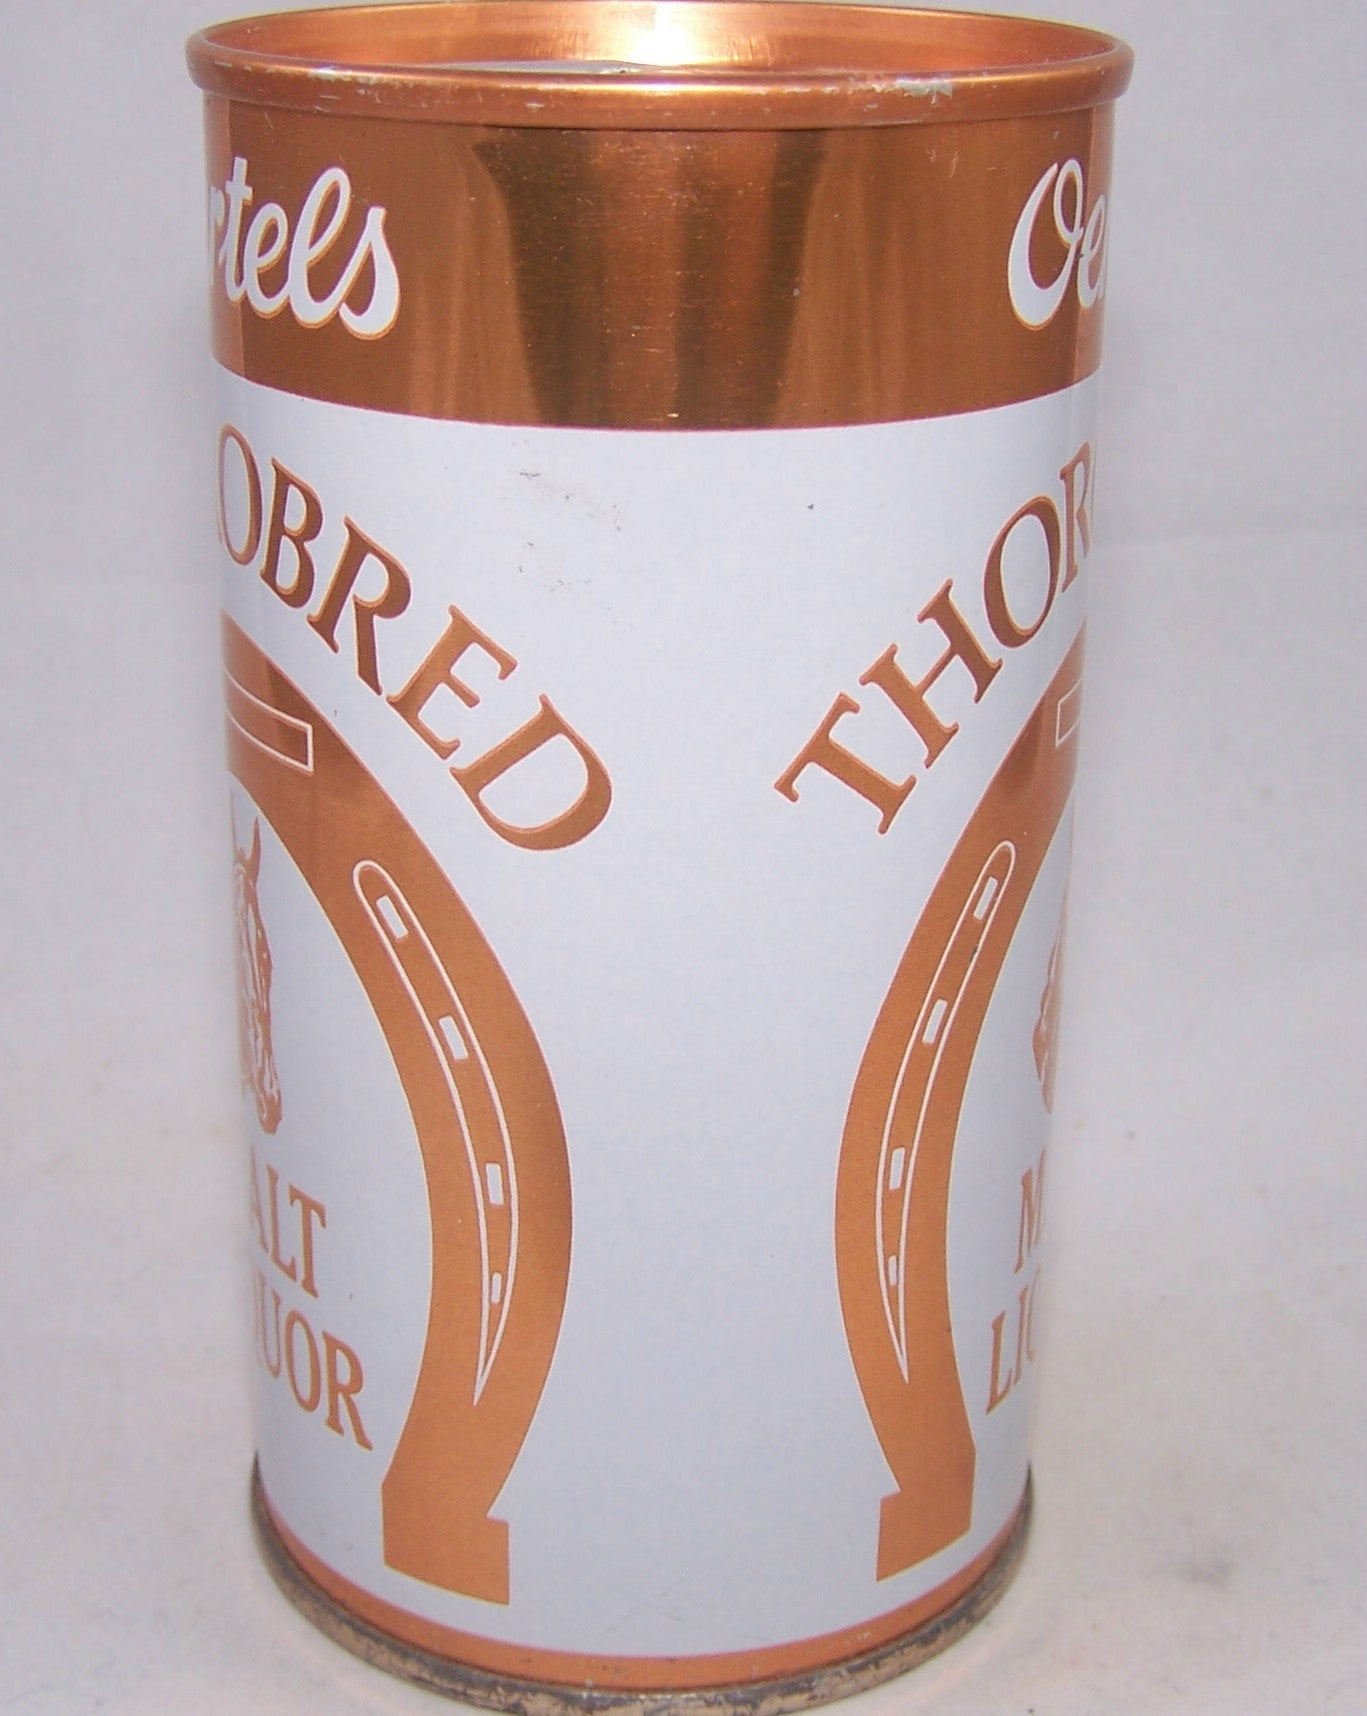 Oertels Thorobred Malt Liquor, USBC II 99-07, Grade 1/1+ Sold on 05/06/17